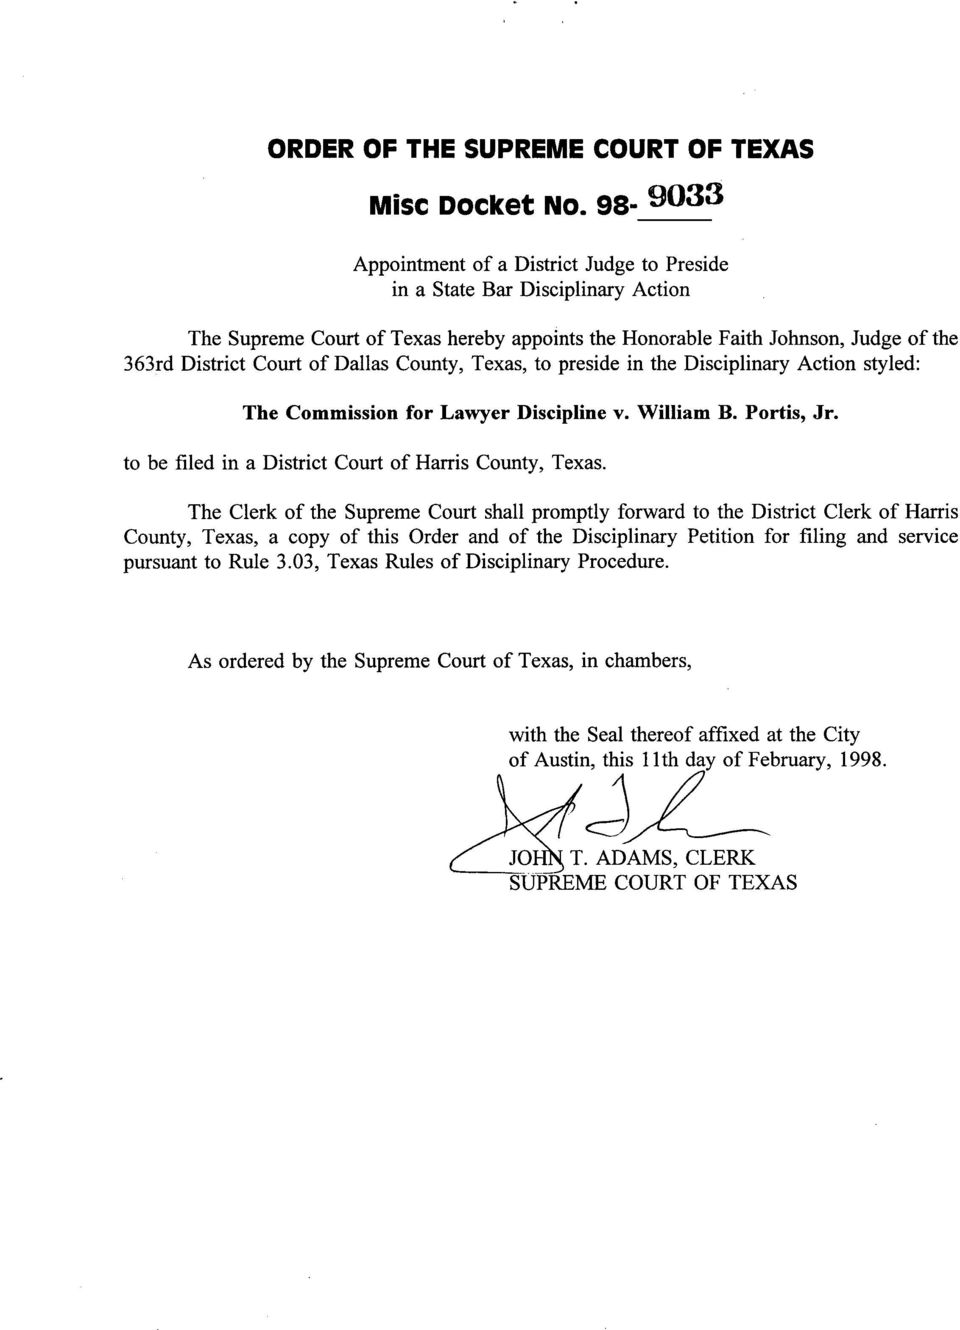 Dallas County, Texas, to preside in the Disciplinary Action styled: The Commission for Lawyer Discipline v. William B. Portis, Jr. to be filed in a District Court of Harris County, Texas.